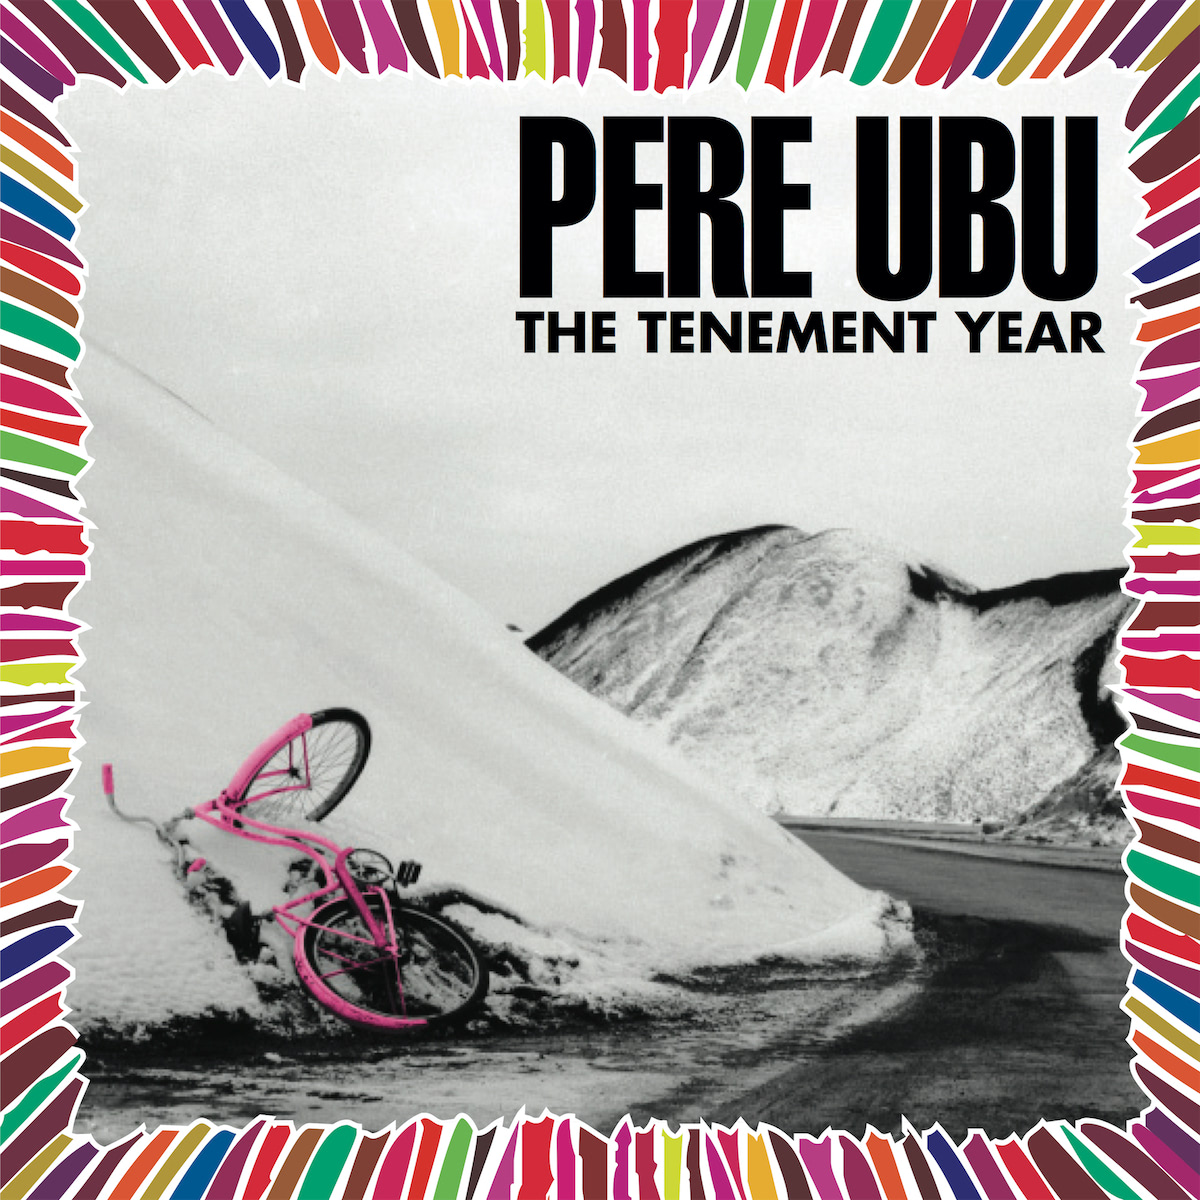 /pere-ubu-tenement-year ART